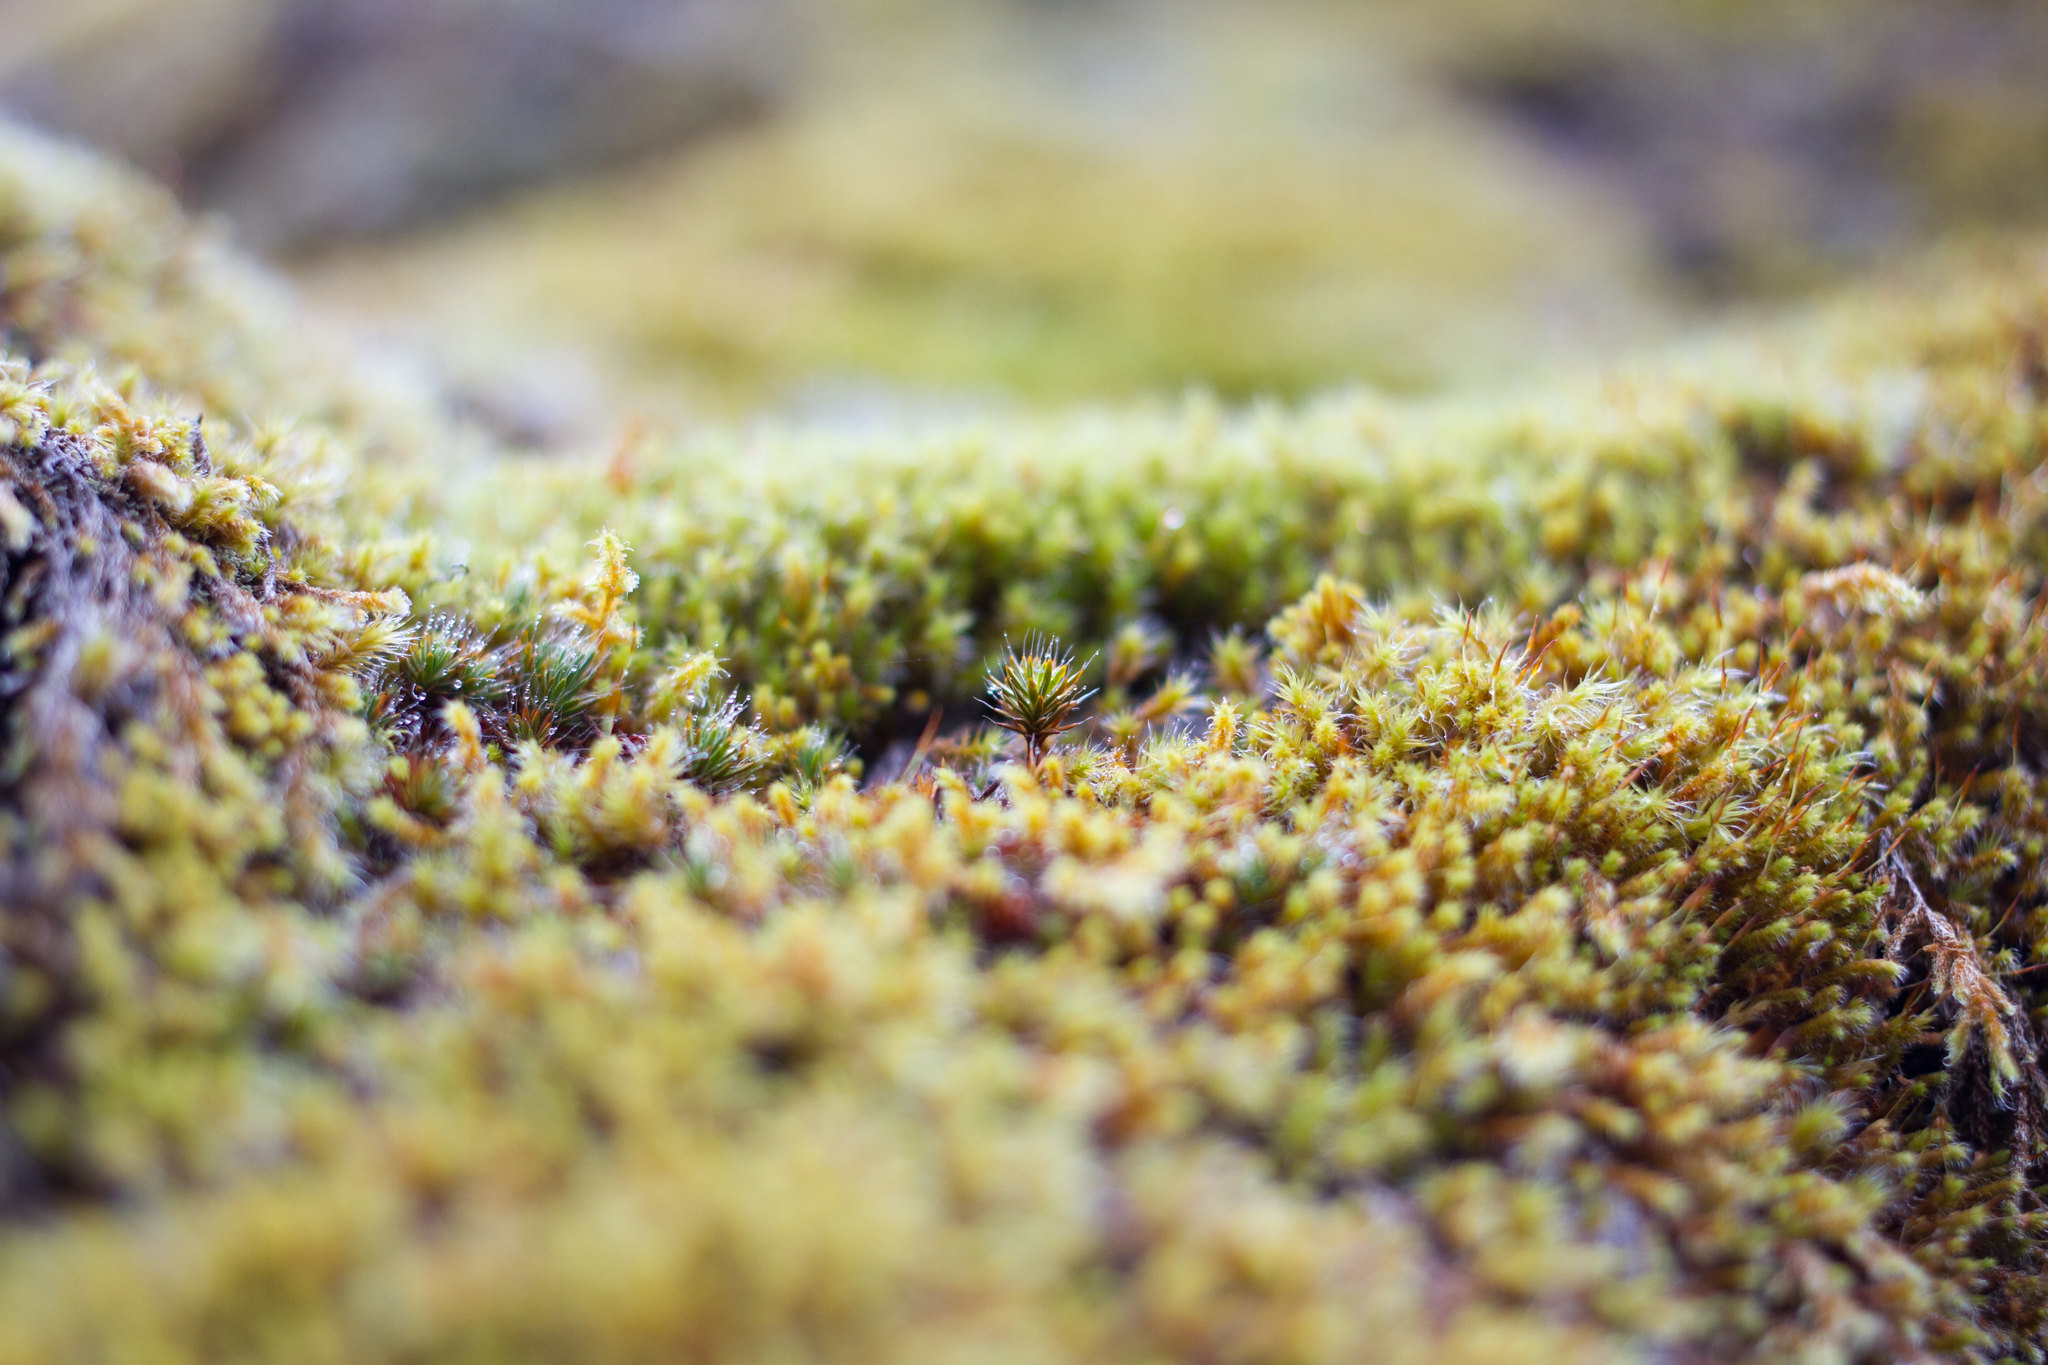 A very close up image of moss